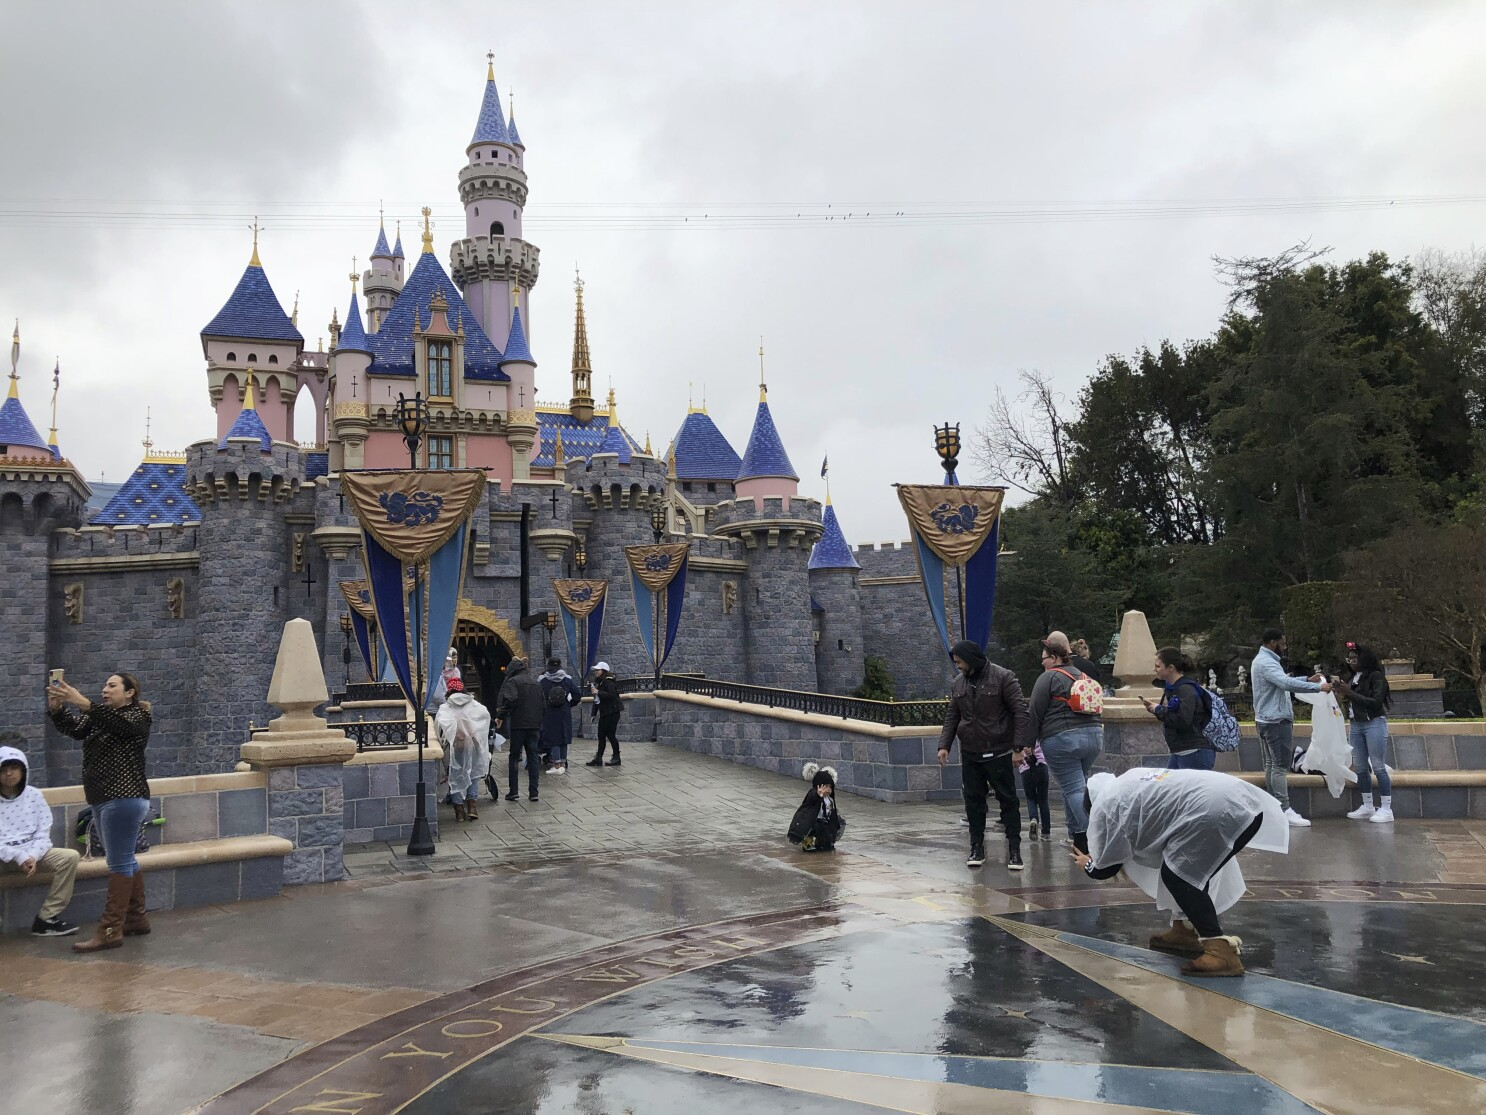 Disneyland reopening may happen by late April - Los Angeles Times